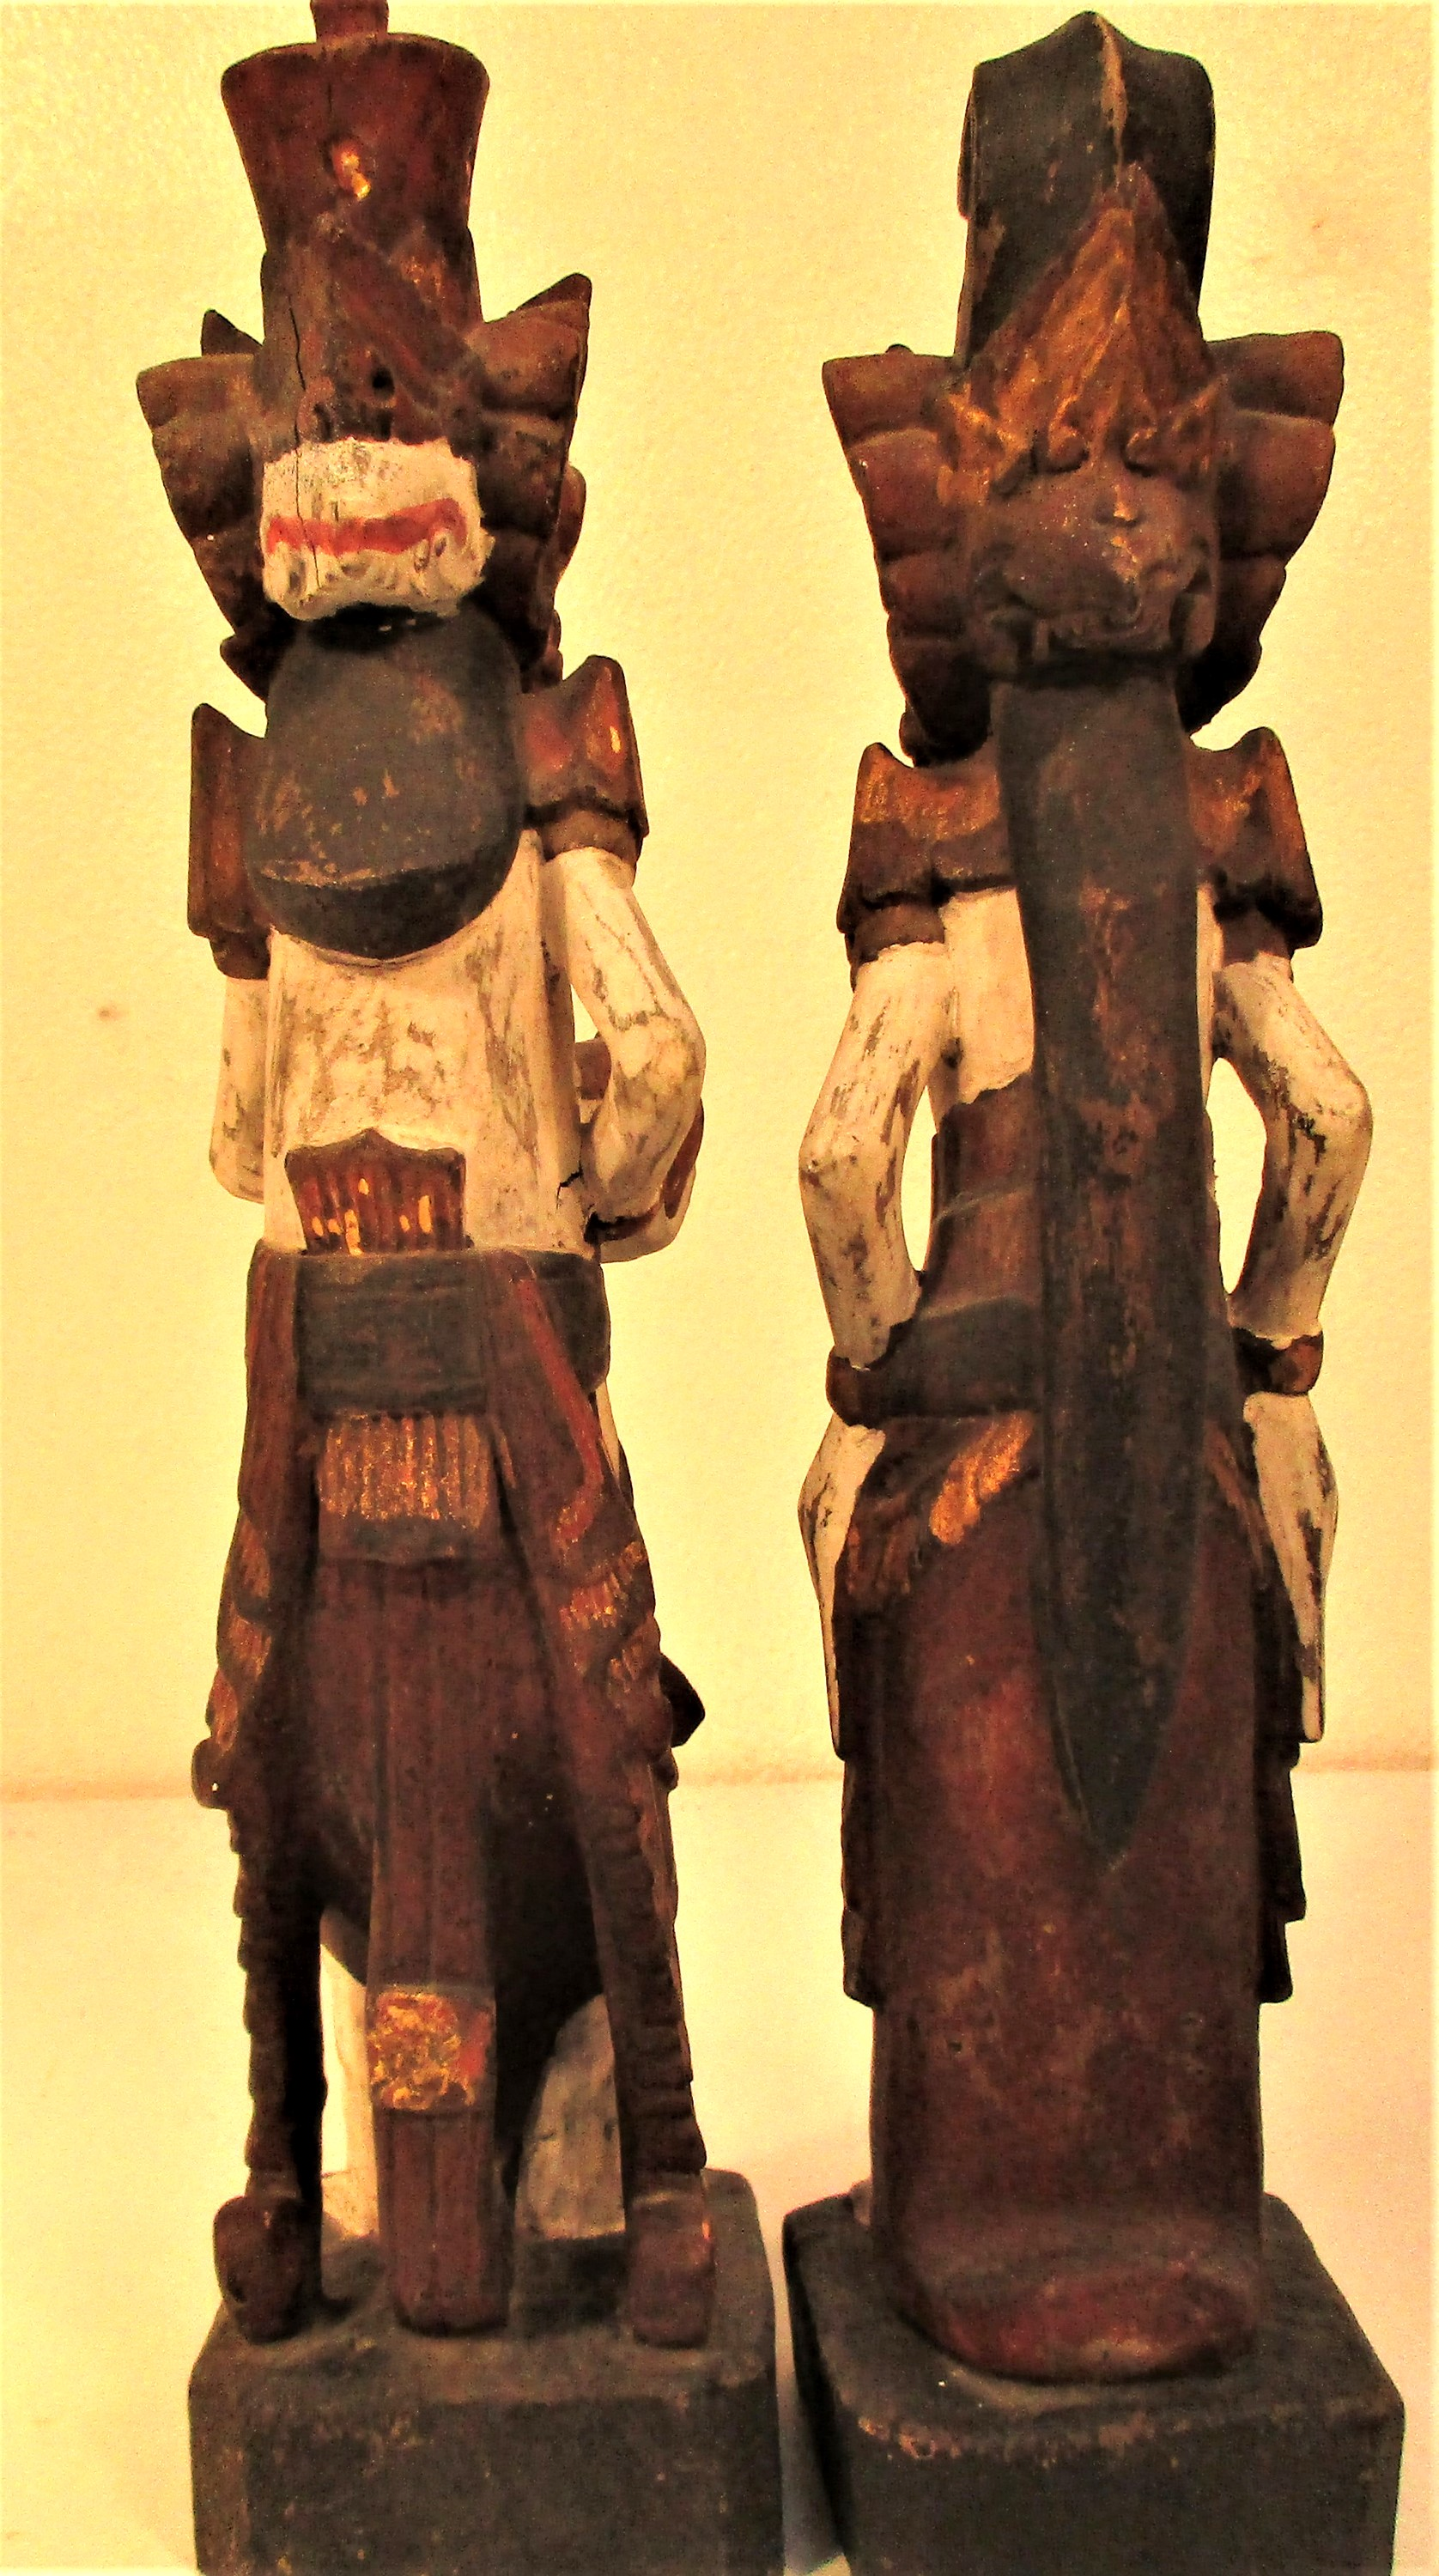 Wedding couple statues from east Bali. They are carved wearing tradition costumes and head dress, - Image 3 of 4